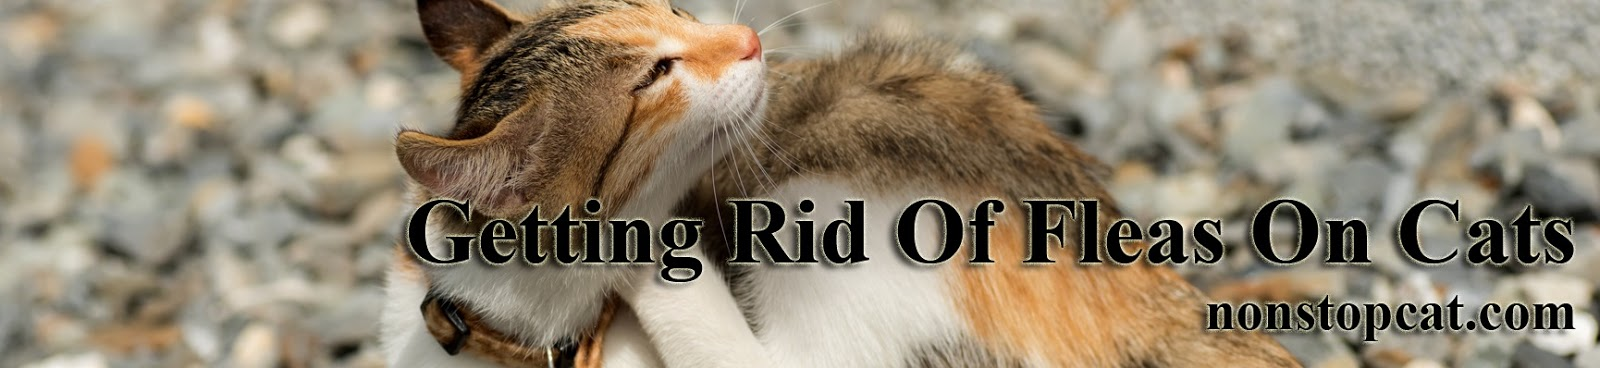 Getting Rid Of Fleas On Cats